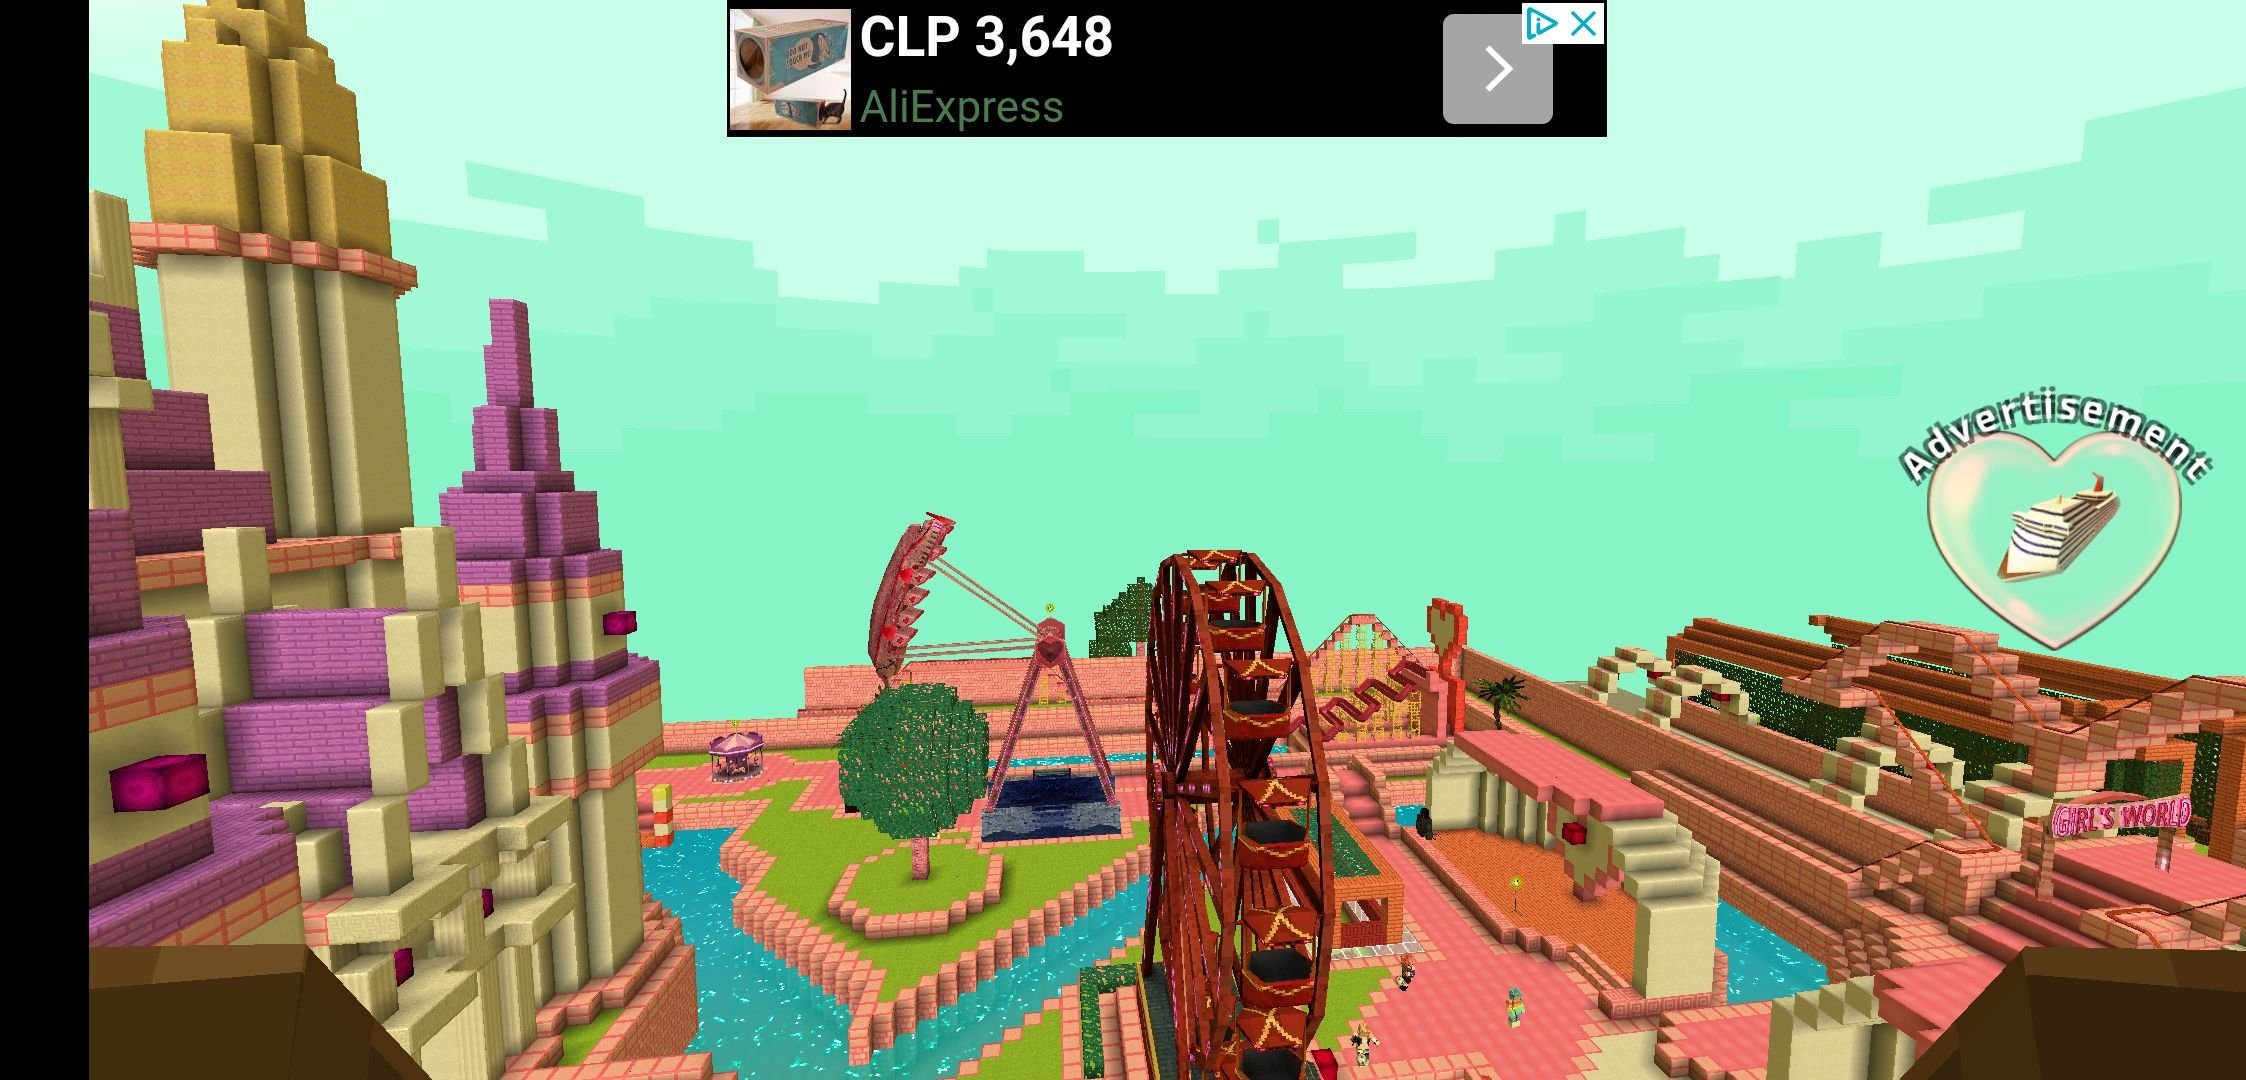 Girls Theme Park Craft 1 3 - Download for Android APK Free